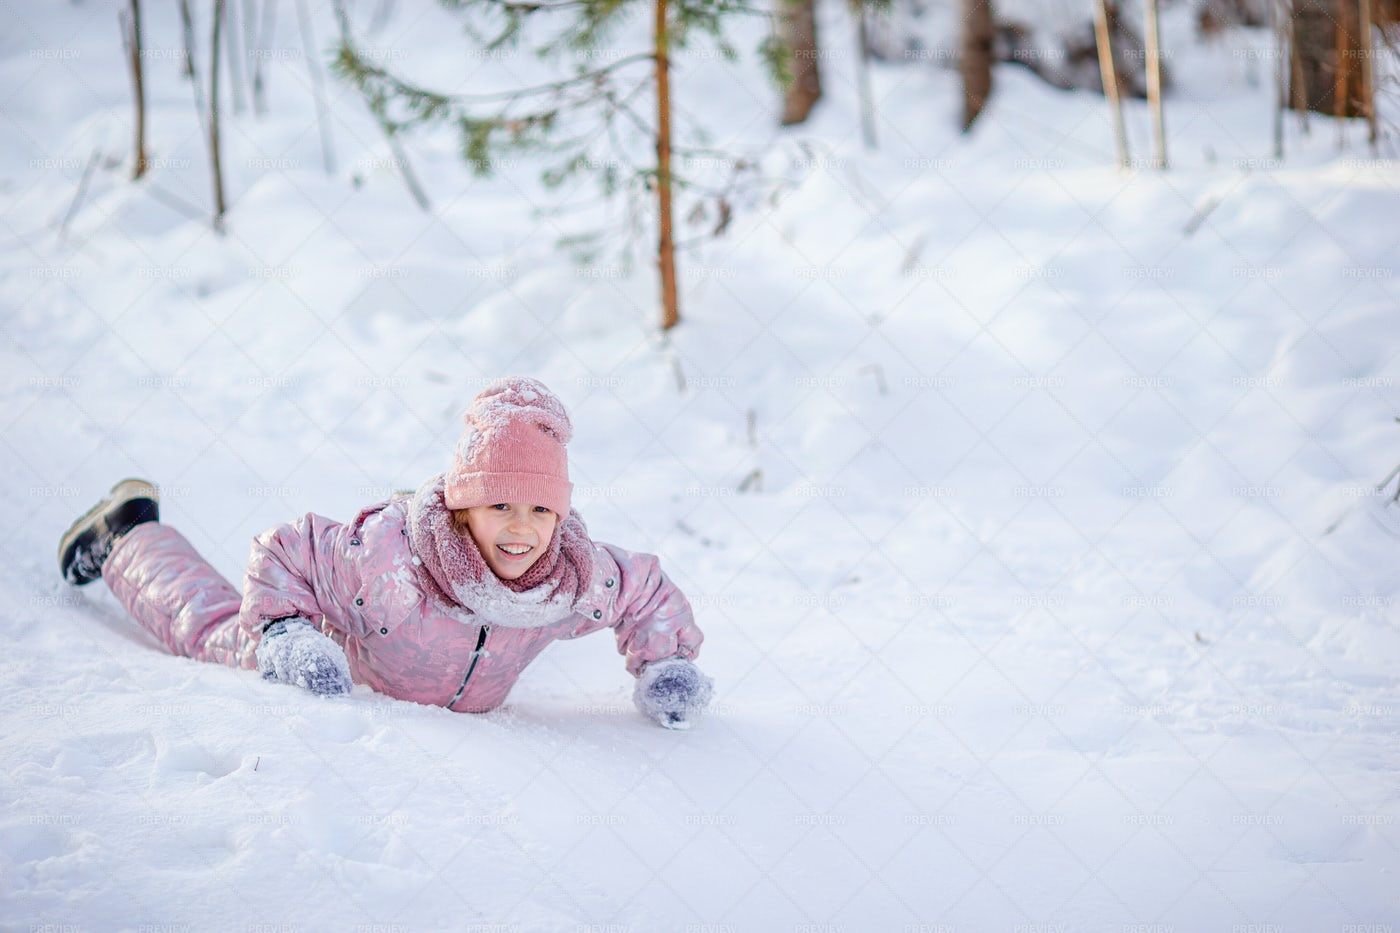 Child Fell On Icy Hill: Stock Photos